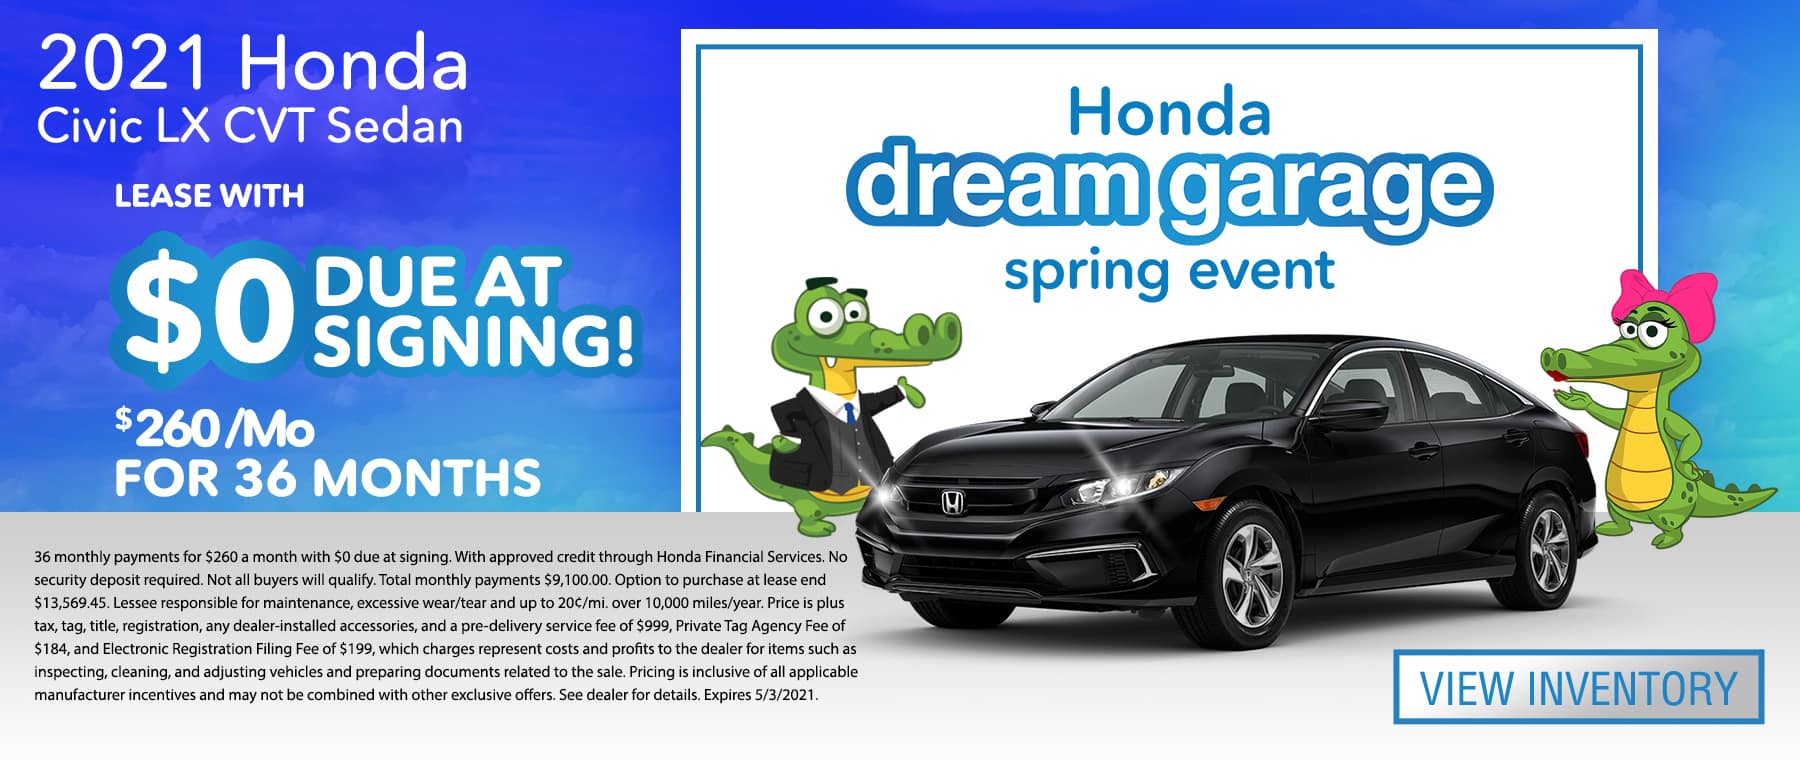 2021 Honda Civic Sedan LX CVT | Lease With $0 Due At Signing $260/Mo For 36 Months | Honda dream garage spring event